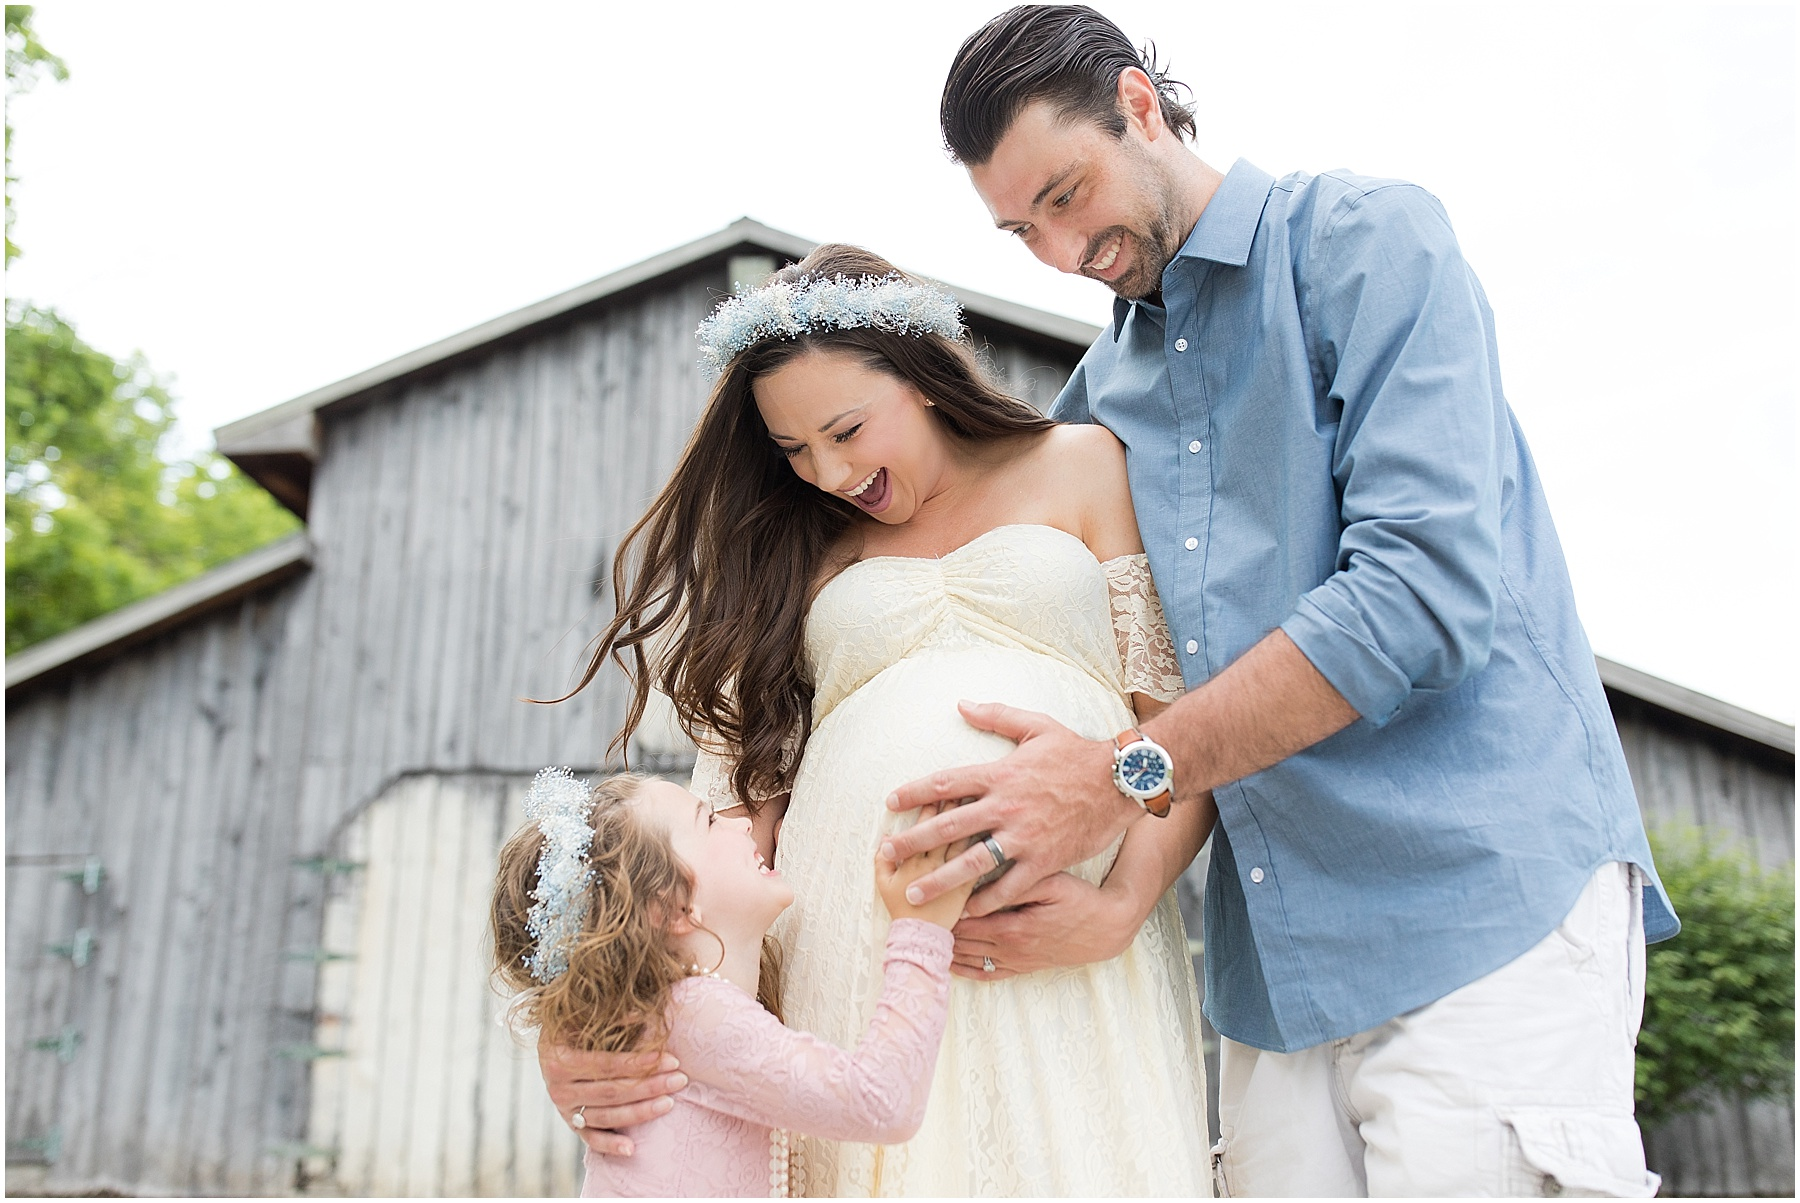 Father and daughter holding mothers belly, celebrating their soon to be second daughter - Indianapolis Maternity Photography